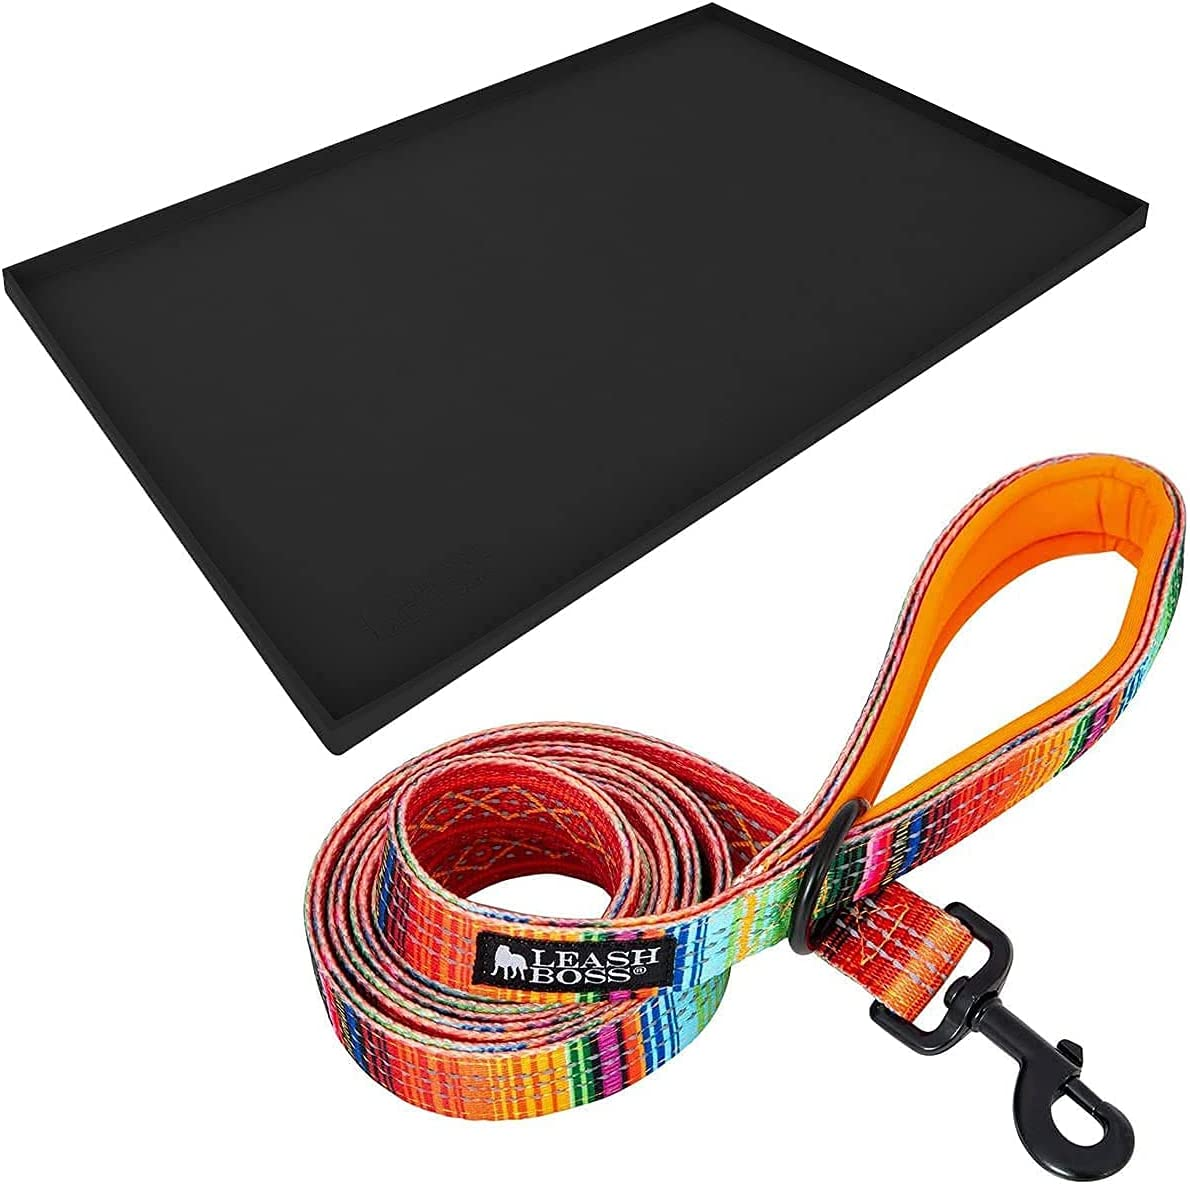 """Leashboss XL Mat and Blanket Leash - Silicone Dog Food Mat (Black 25"""" x 17"""") and Double-Thick 6Ft Reflective Leash with Padded Handle (Blanket)"""